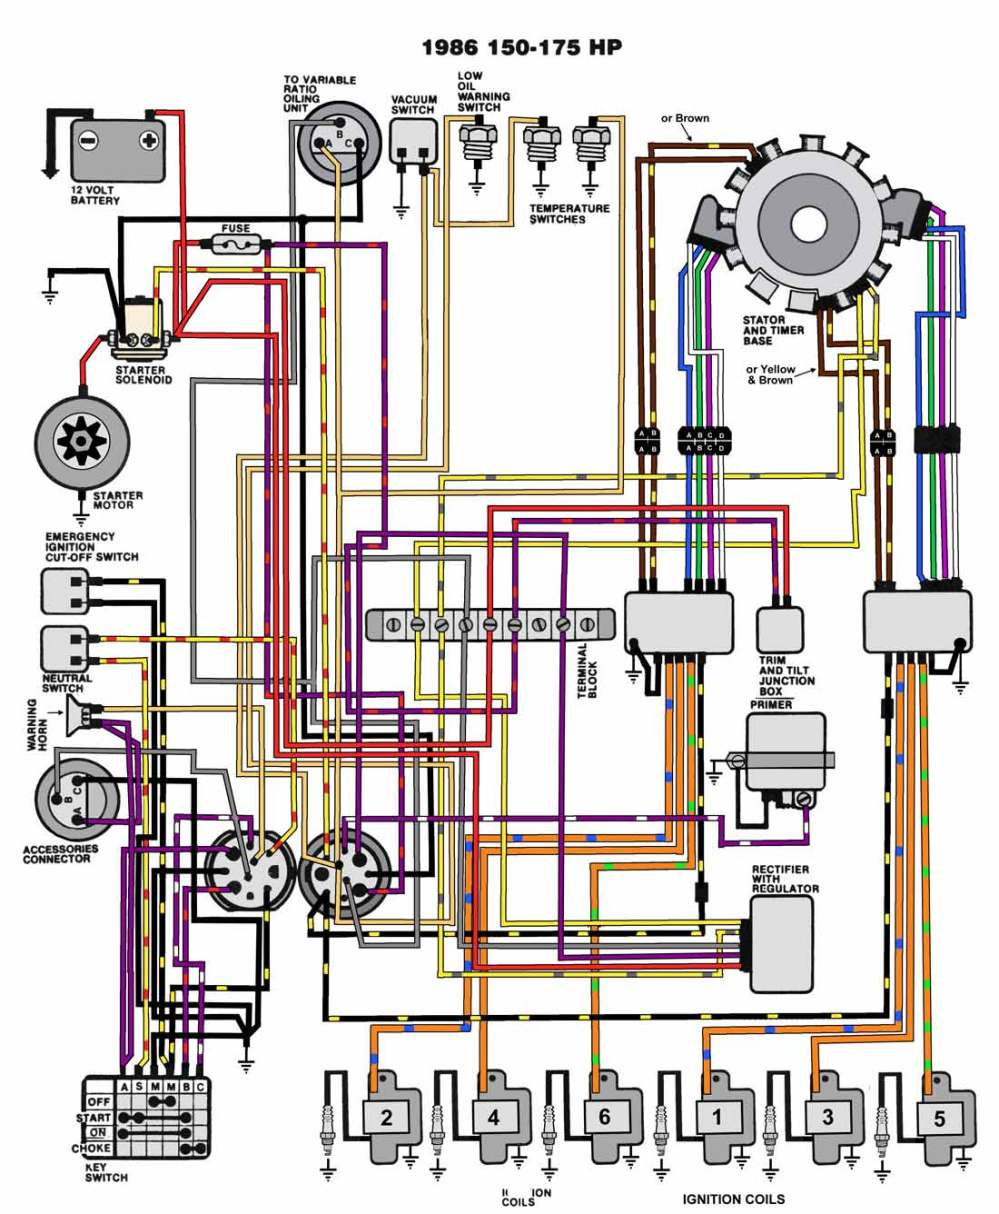 medium resolution of etec wiring diagram wiring diagram portal geothermal power diagram etec oil diagram